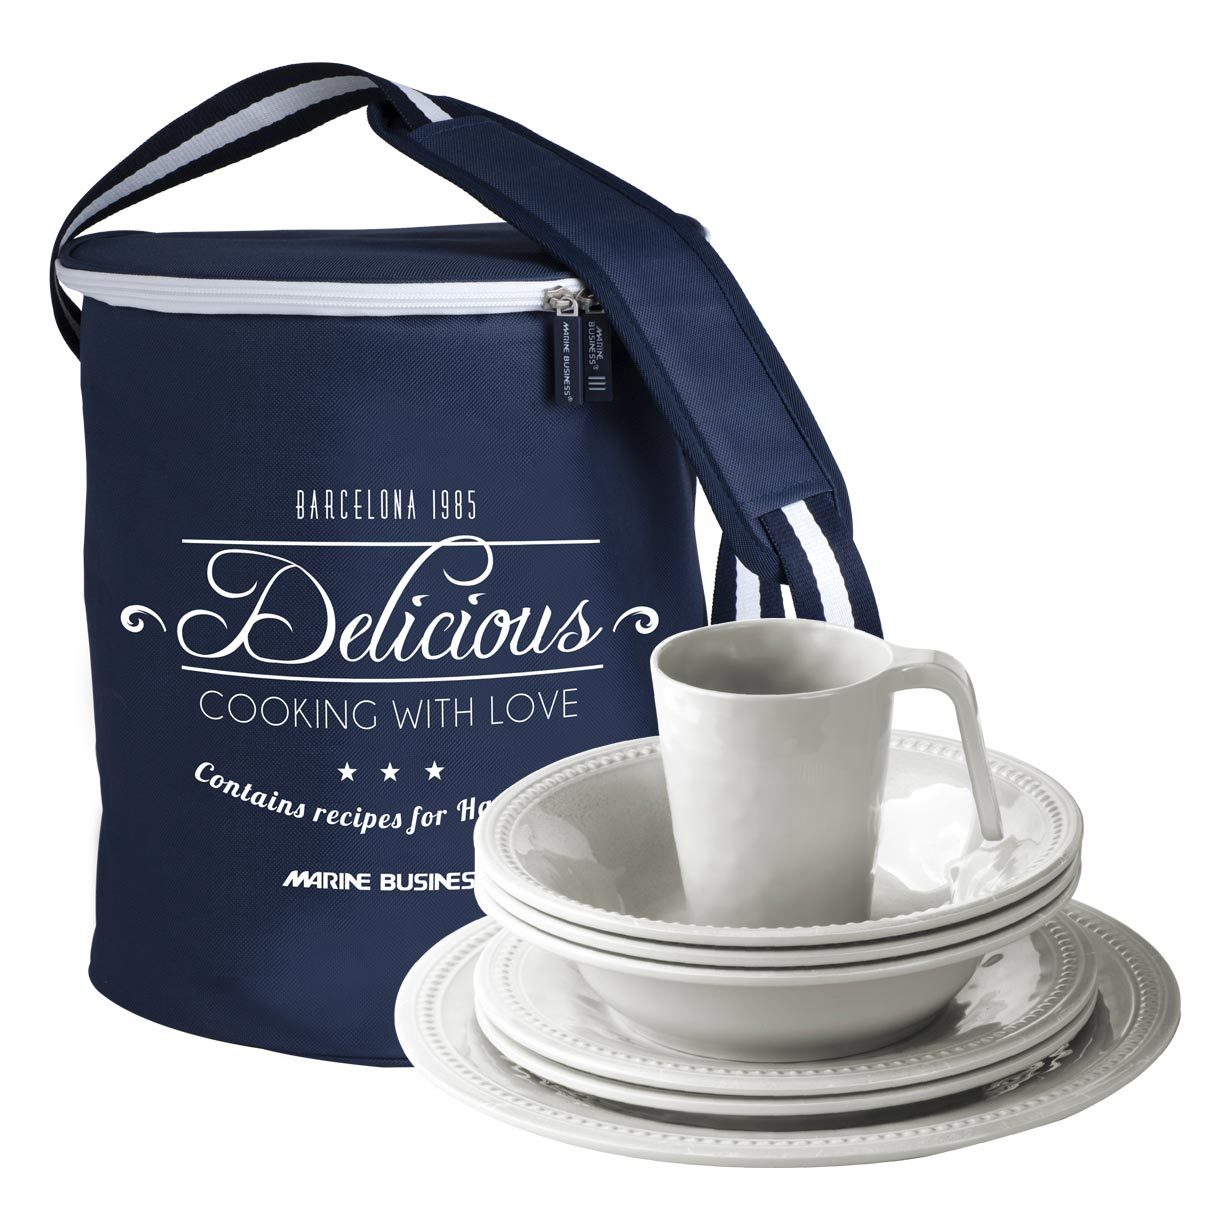 Melamine Kitchenware Pack, Harmony Pearl, 6 Person